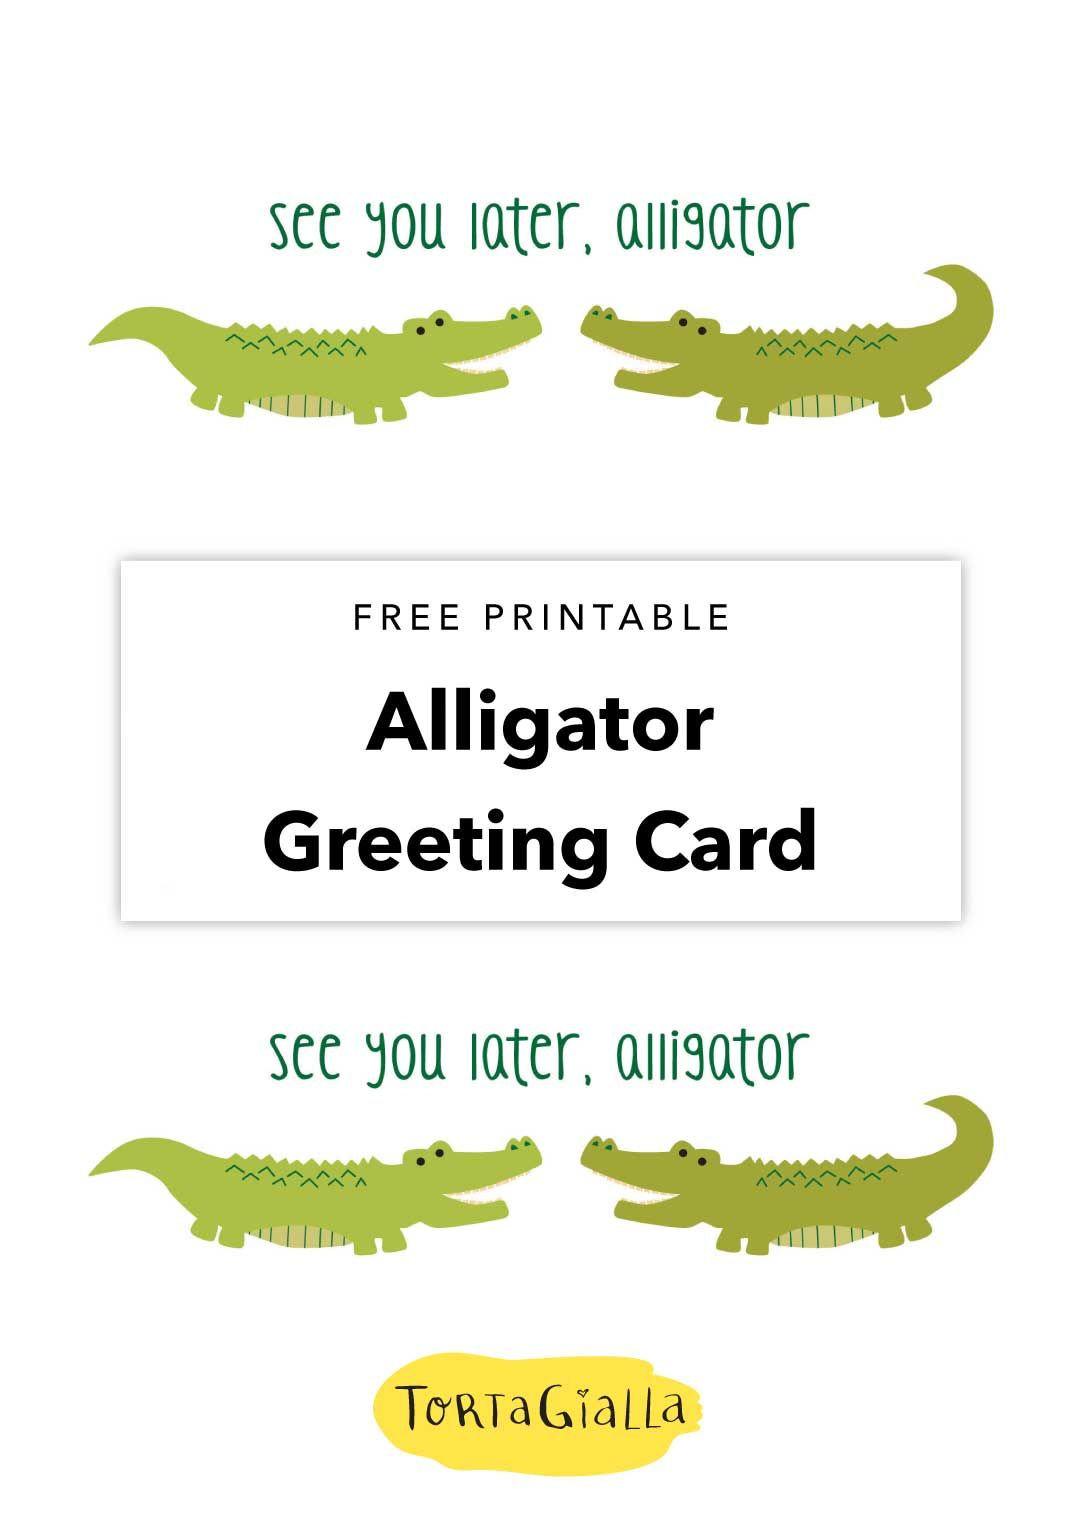 Free Printable See You Later Alligator Card